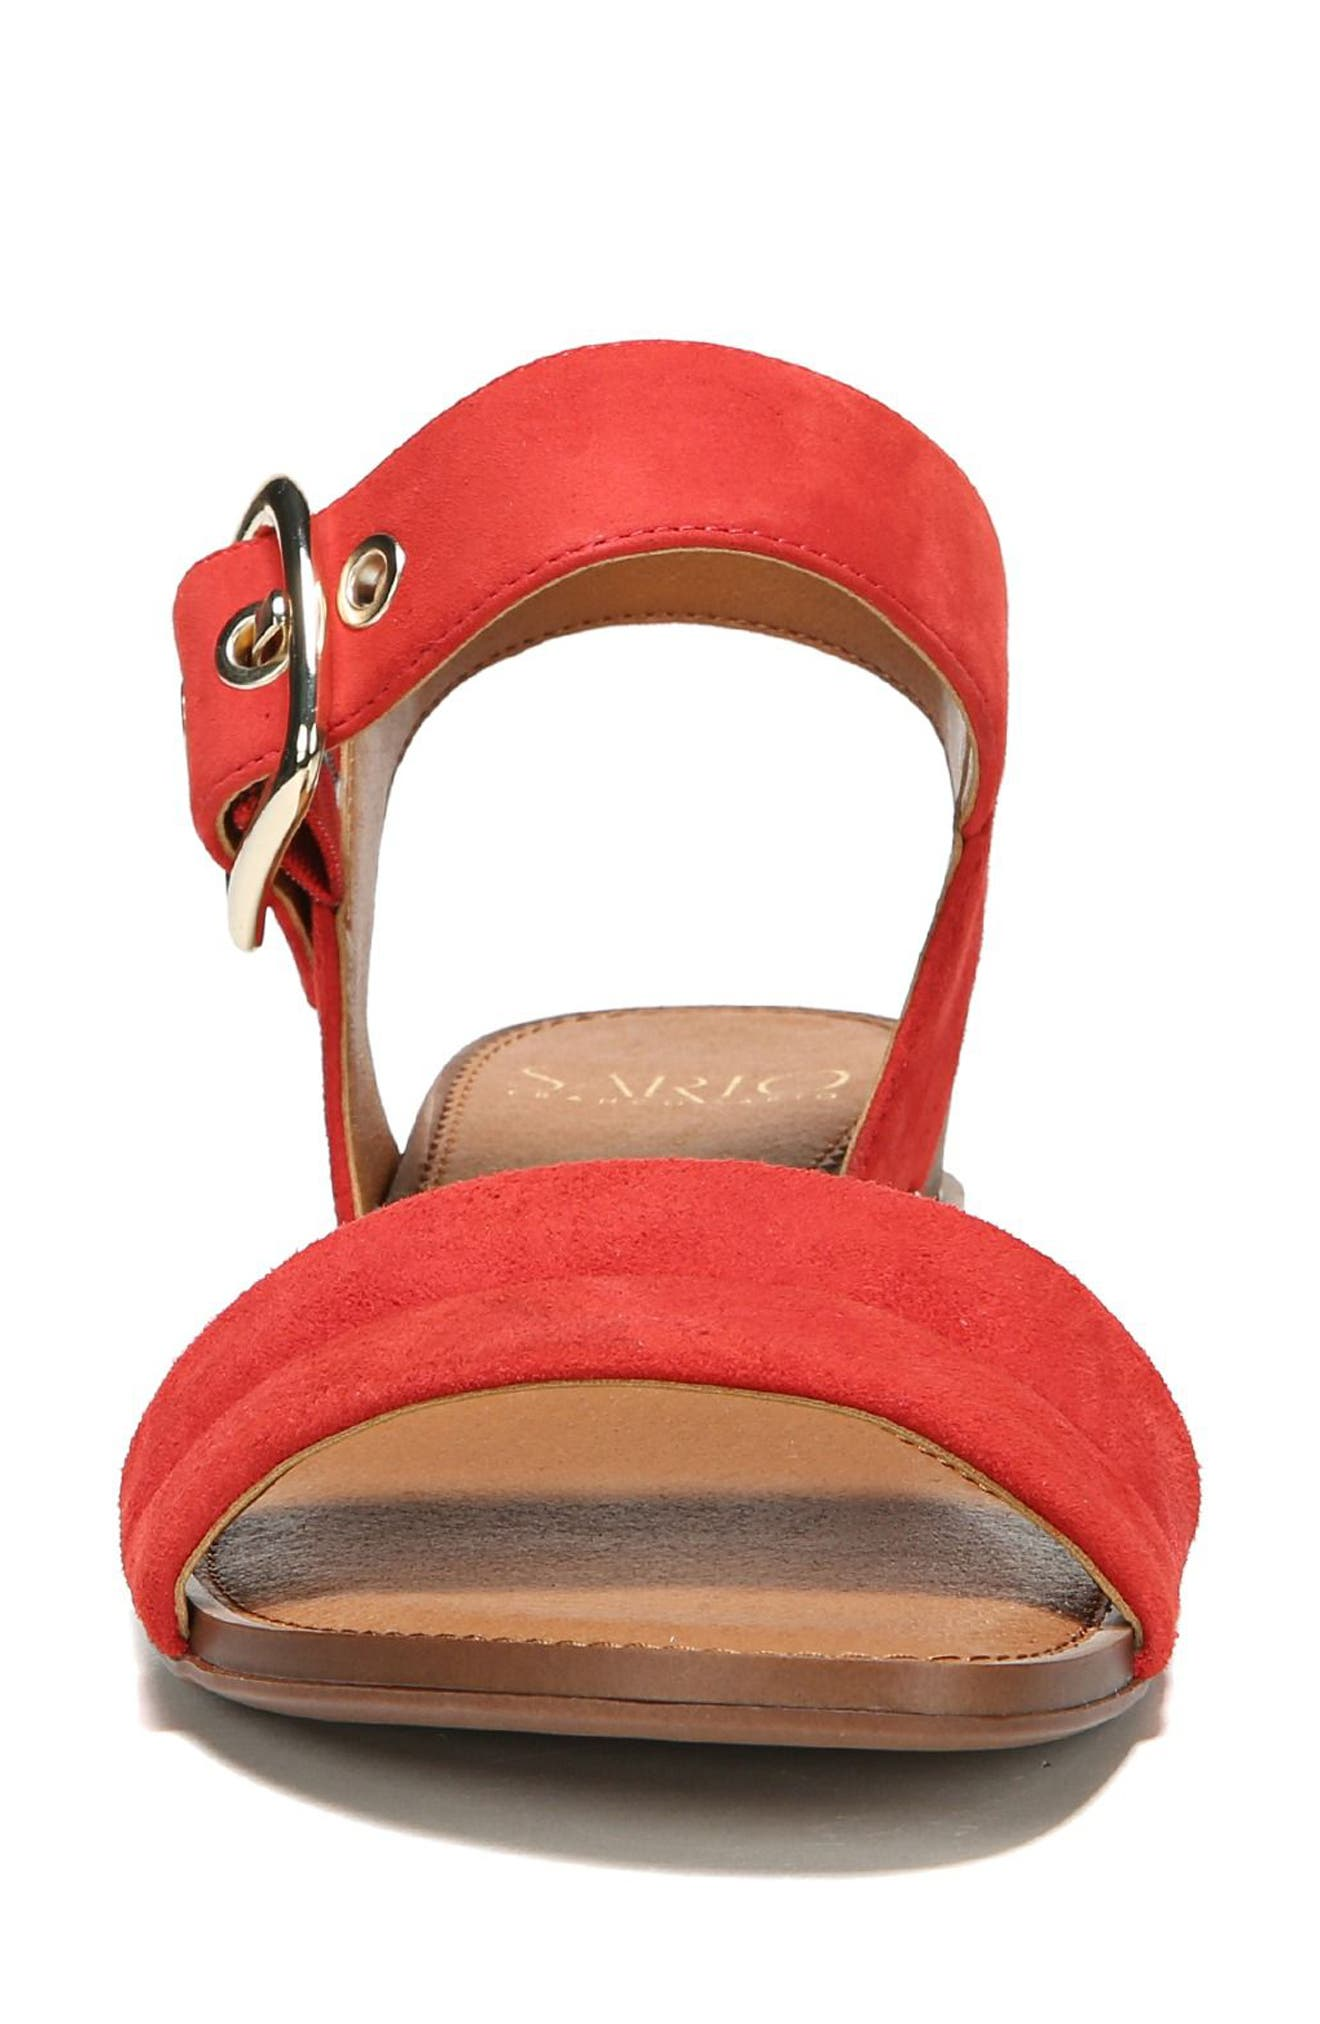 Patterson Low Wedge Sandal,                             Alternate thumbnail 4, color,                             Pop Red Suede